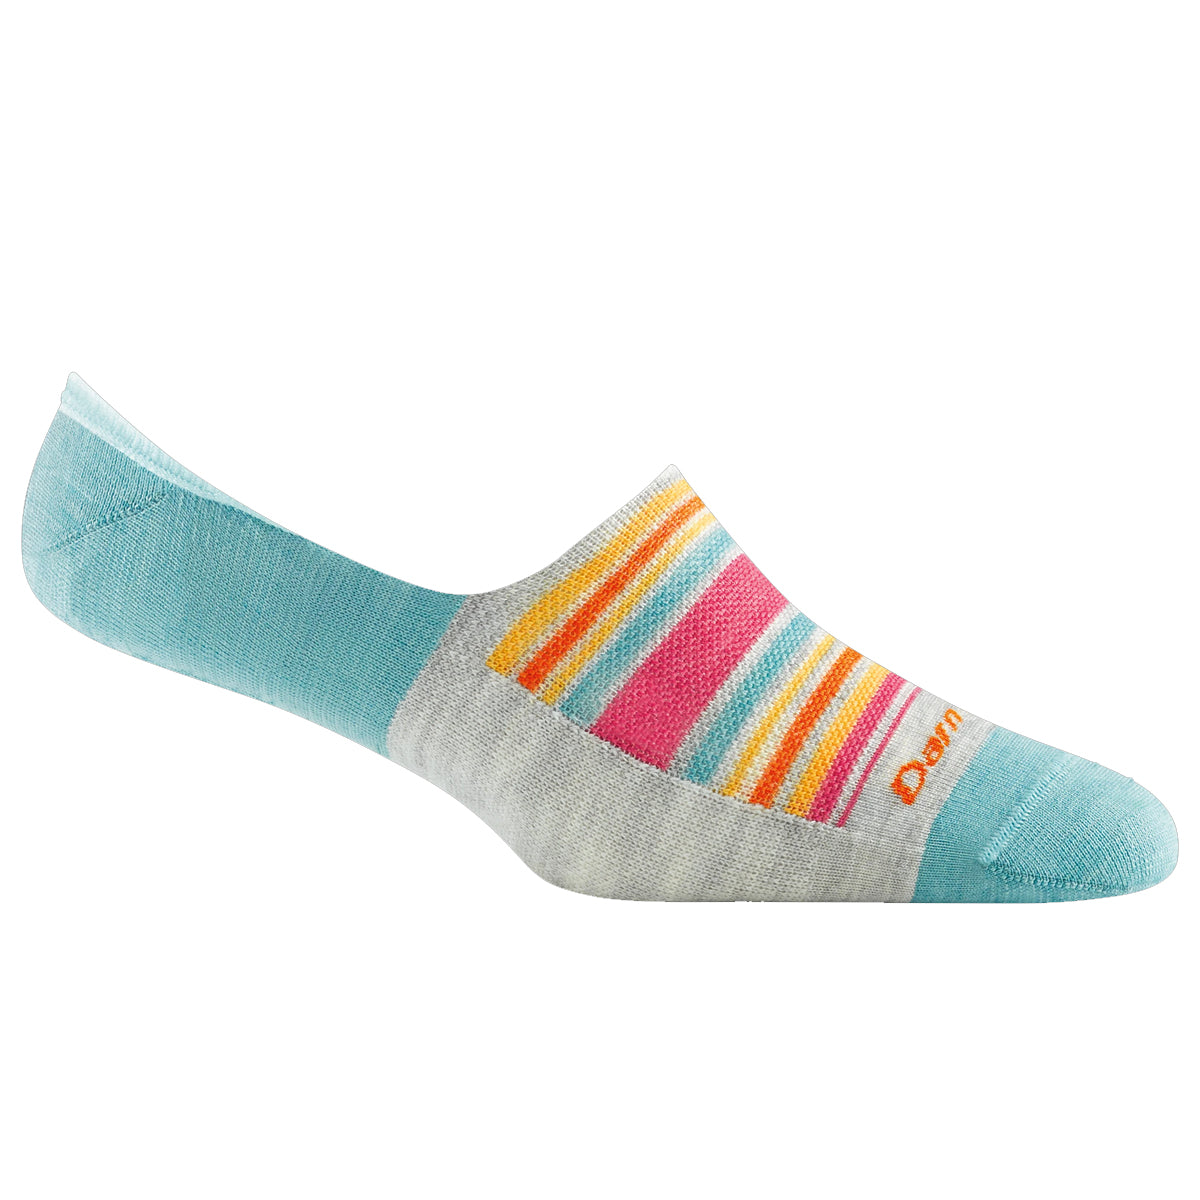 Darn Tough Women's Topless Sunbaked No Show Hidden Lightweight Lifestyle Socks - Aqua